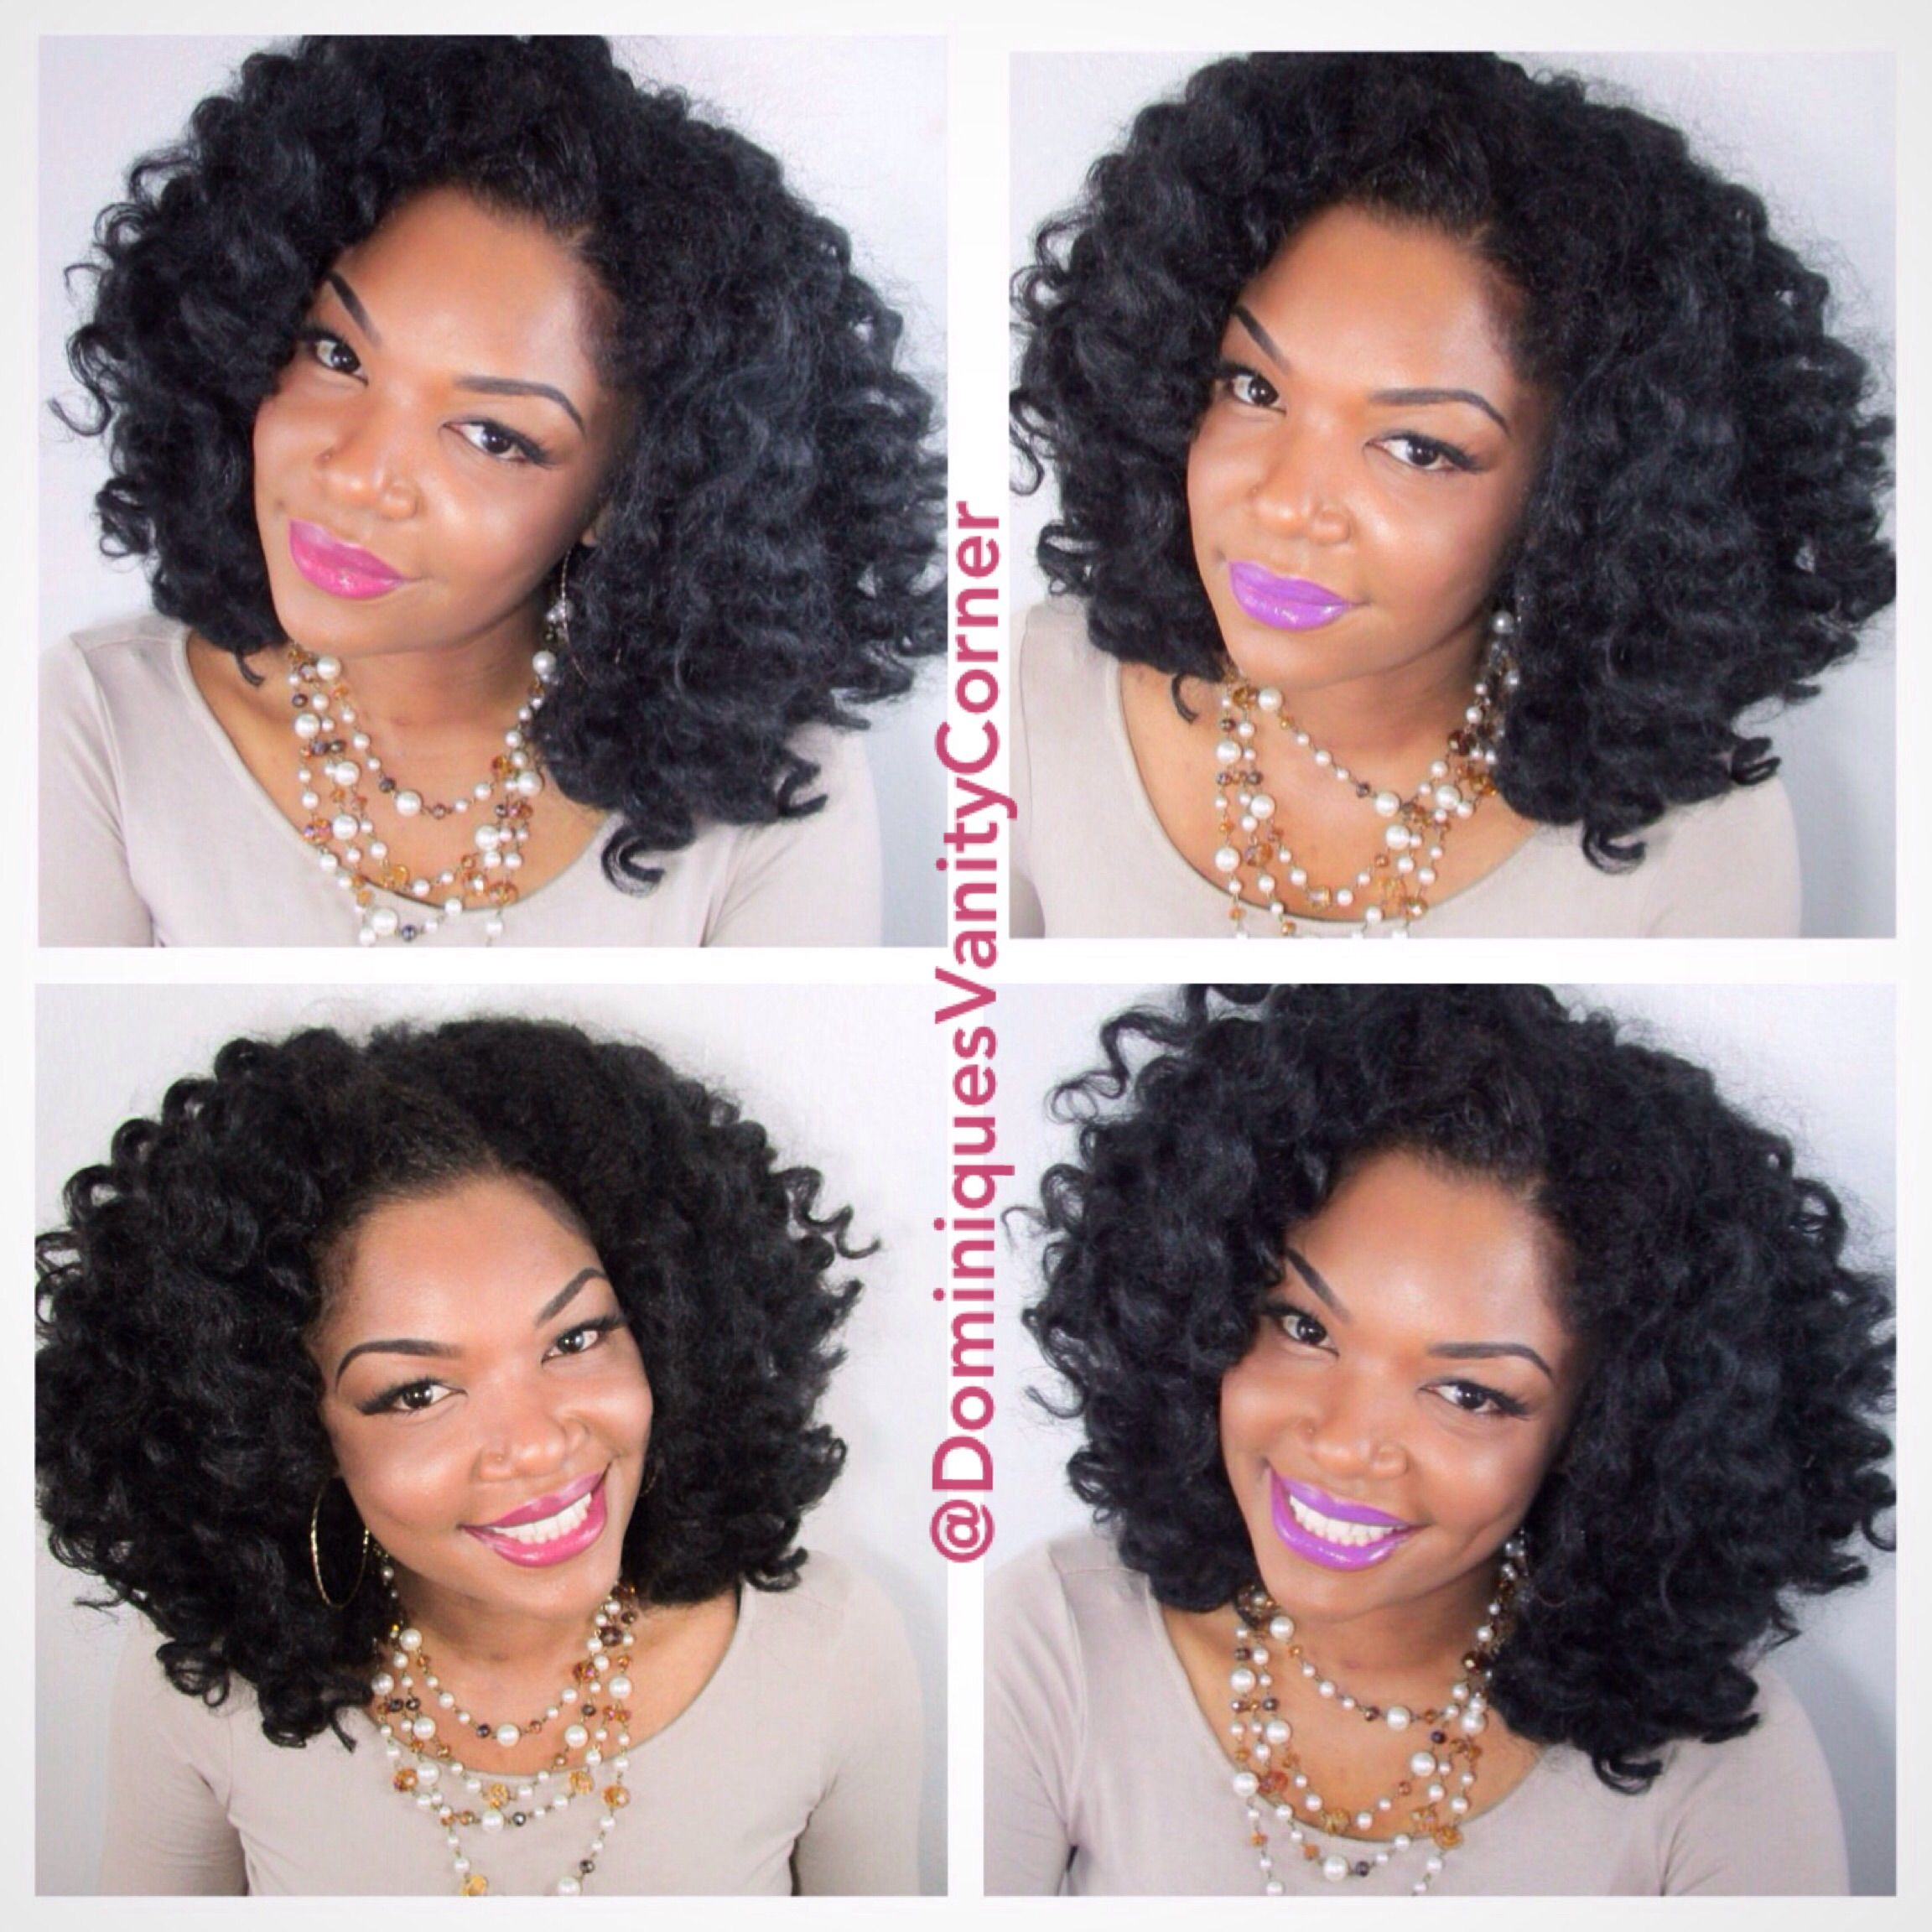 Crochet Kinky Curly Wig d By Dominique Oliver